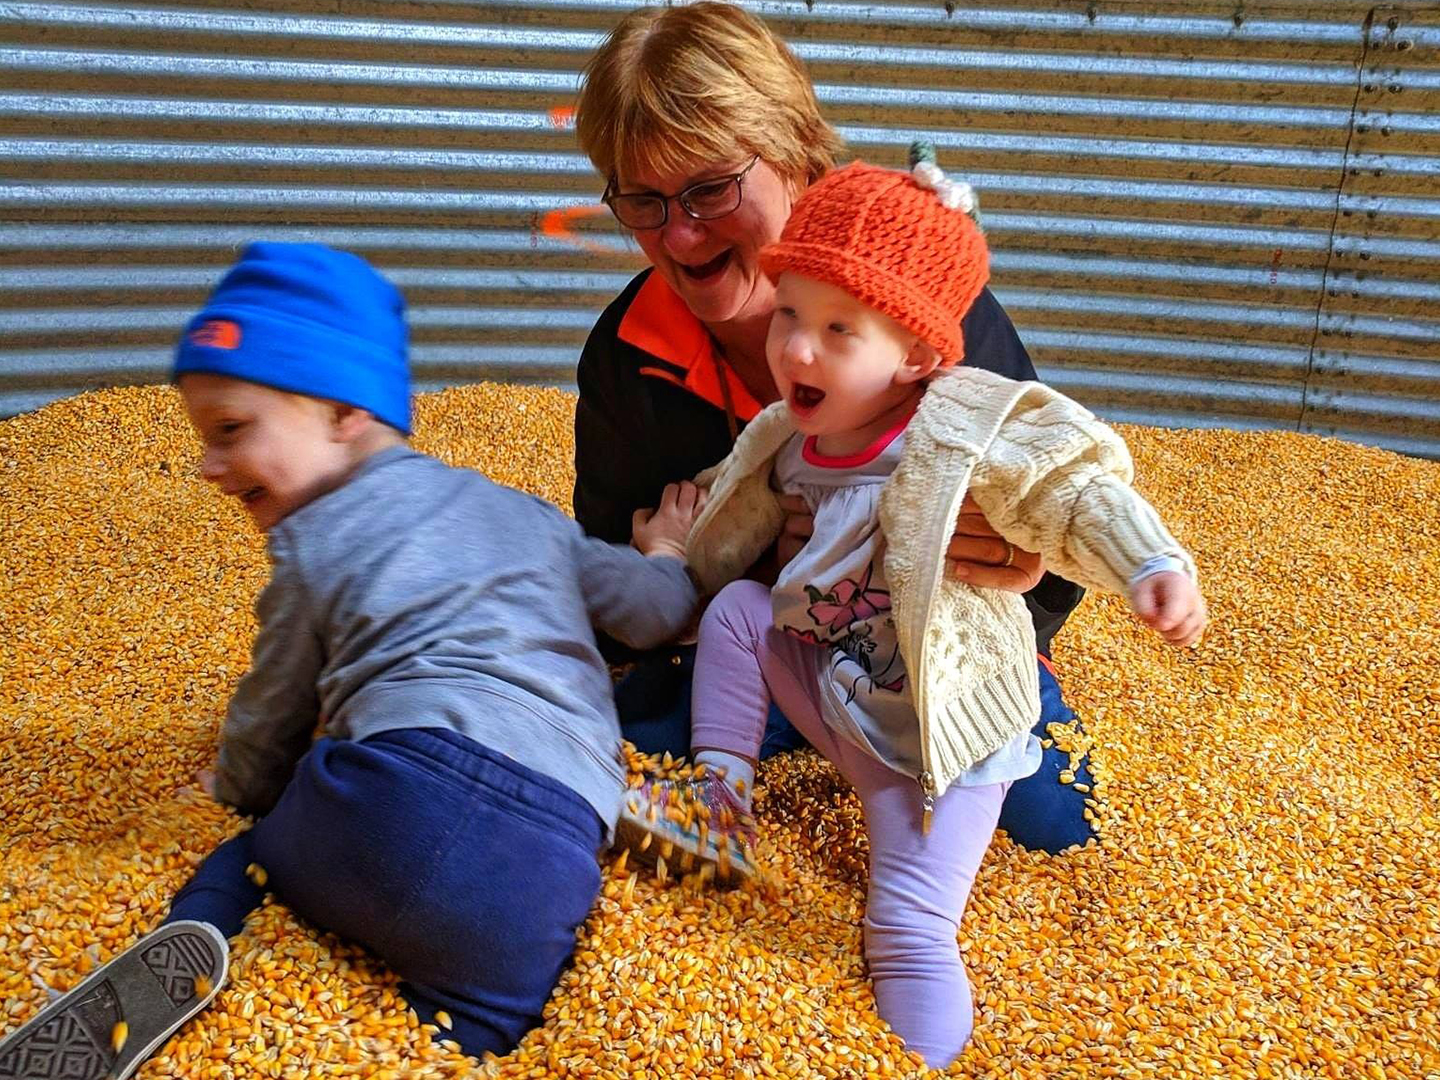 Noreen with her two grandkids playin inside the corn pit